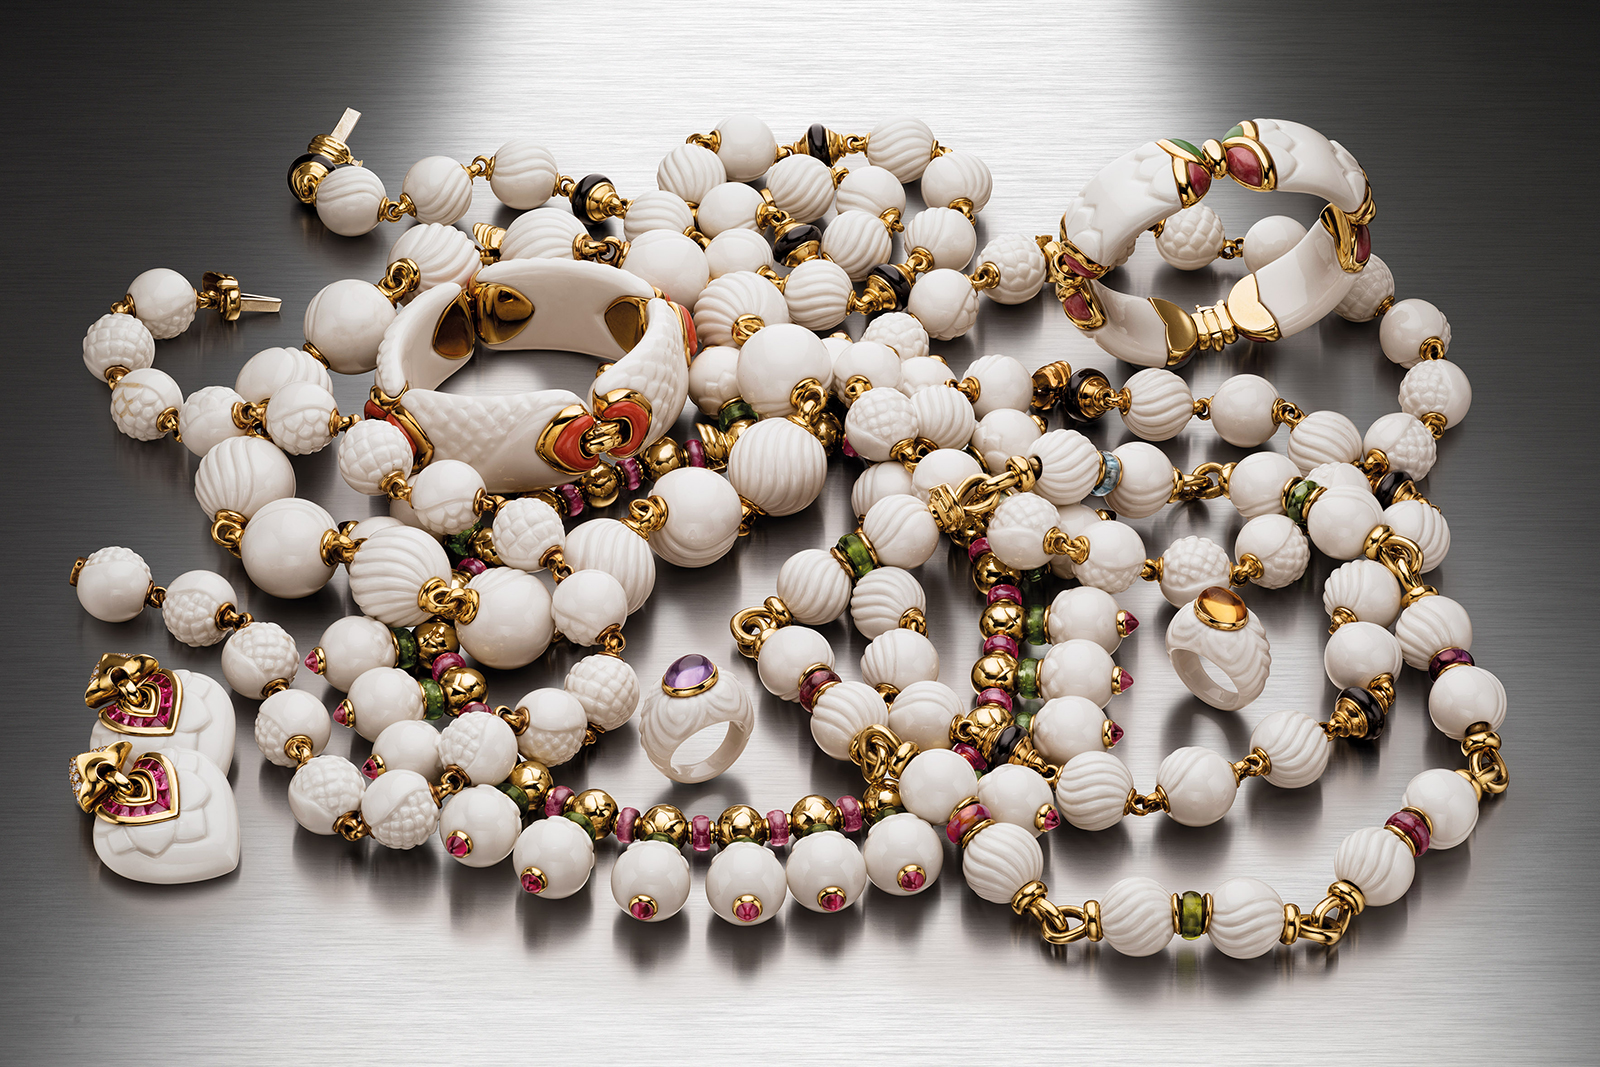 Bvlgari Heritage 'Chandra' collection necklace, bracelets, earrings and rings in engraved porcelain, gemstones and 18k yellow gold